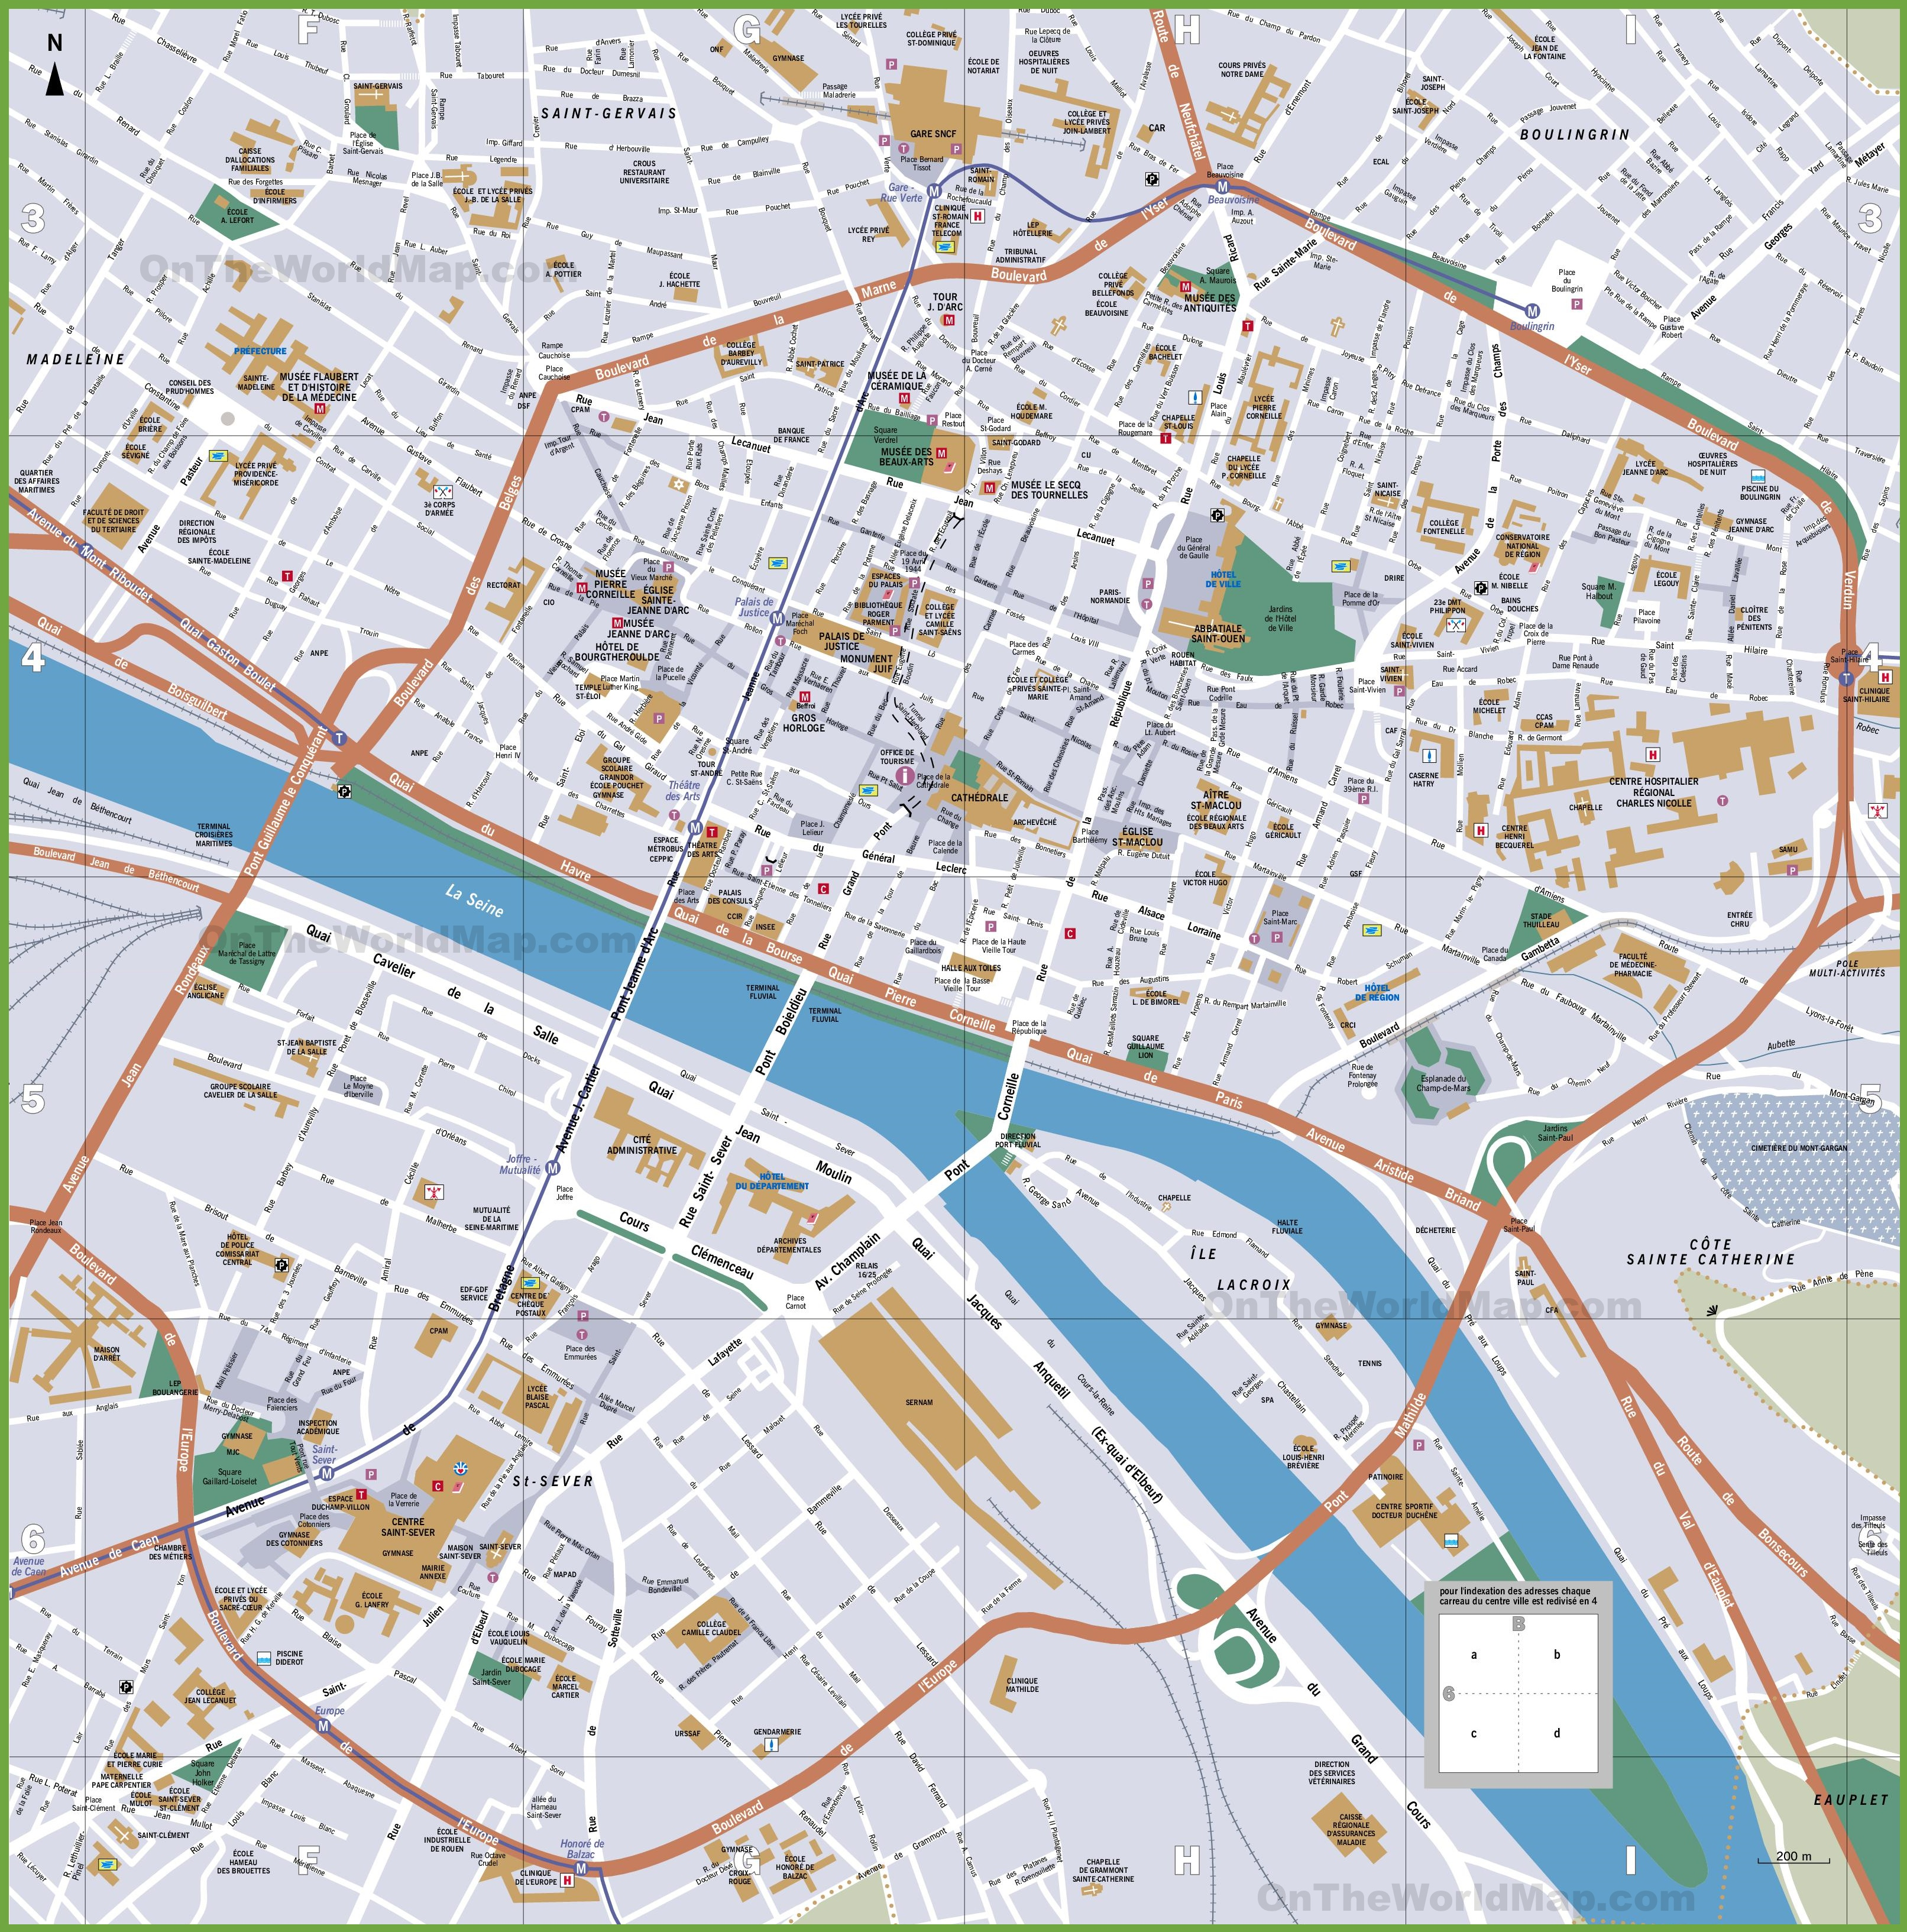 map of rome attractions with Rouen Tourist Map on Location in addition Uppsala Sweden Map moreover Catania furthermore Caen City Center Map furthermore Shekou Sea World Shenzhen.